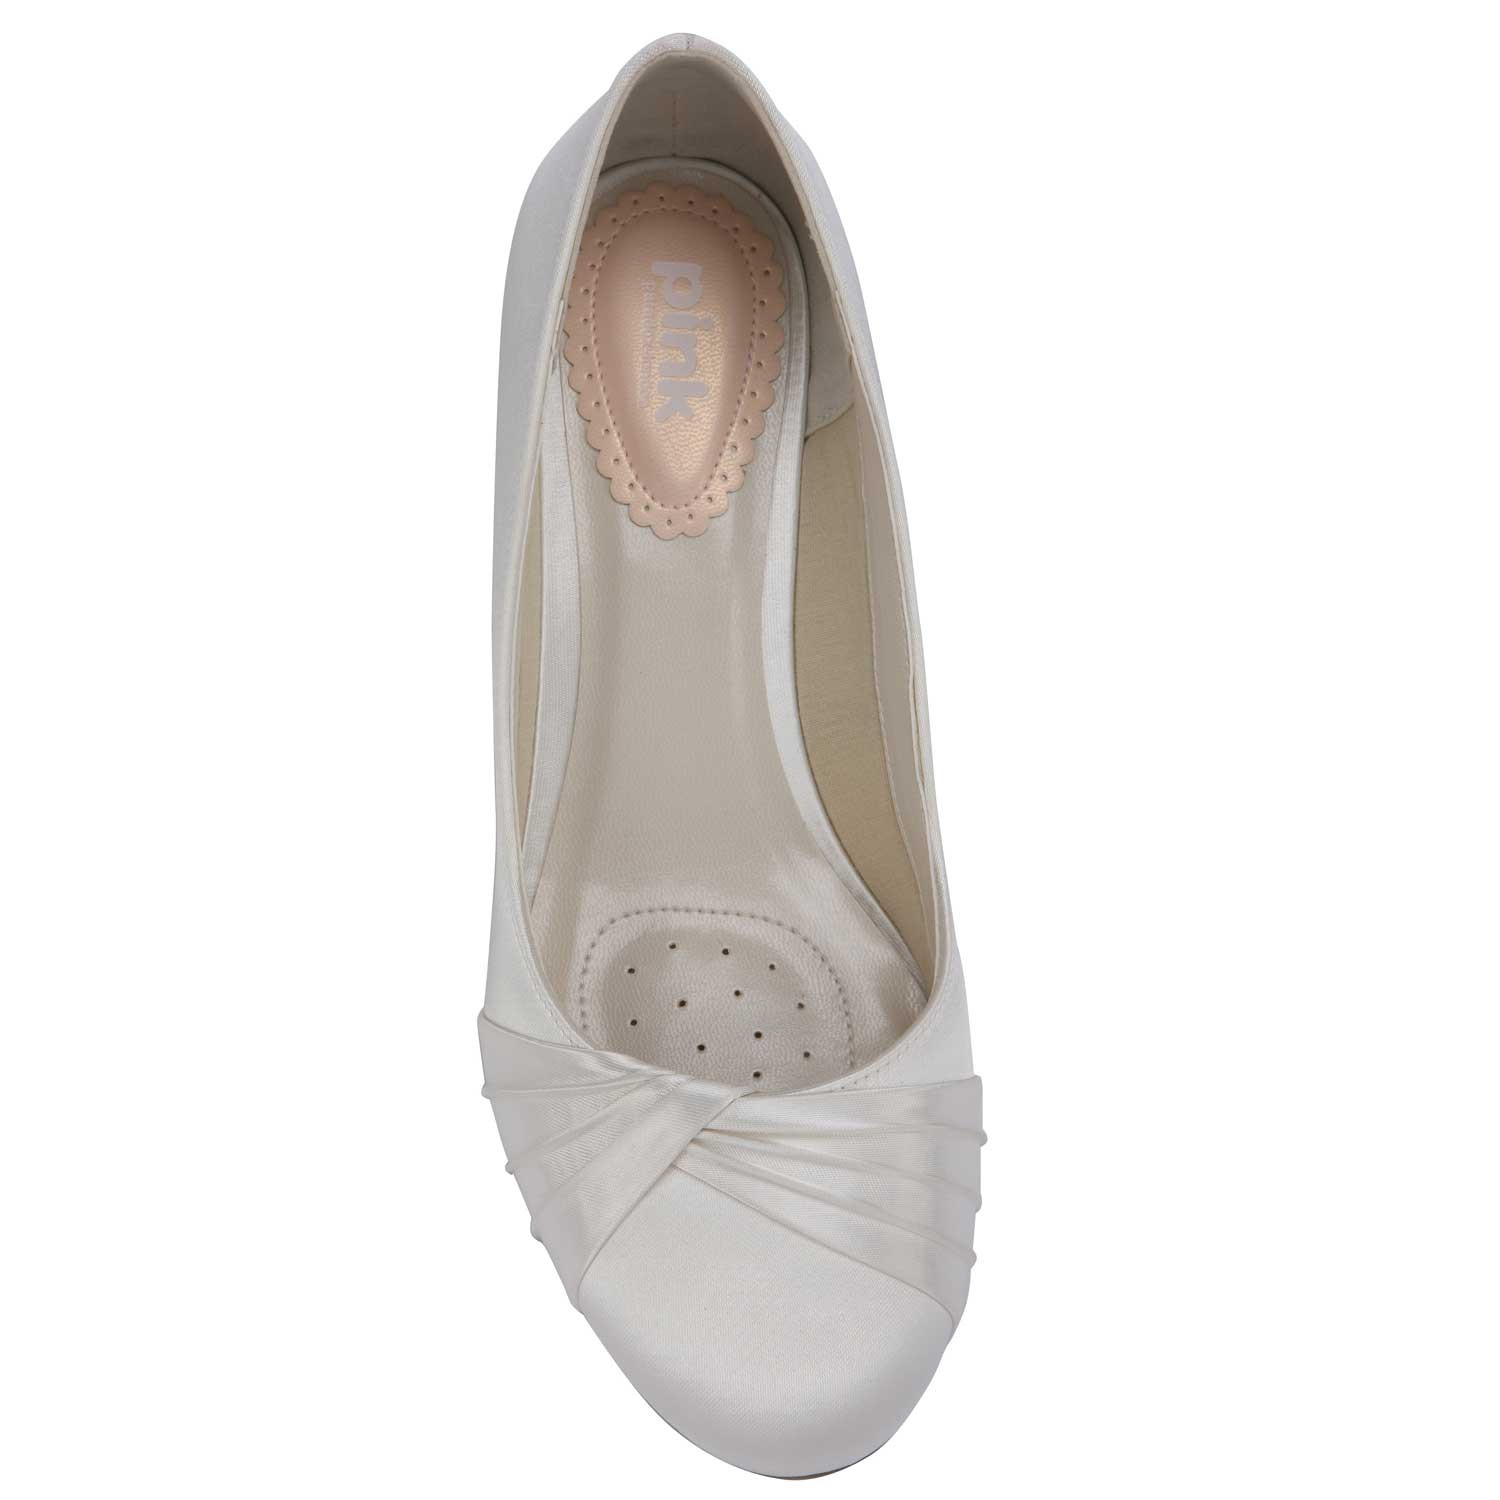 chaussures mariage gleam chaussures mariage talon compens - Chaussure Mariage Compense